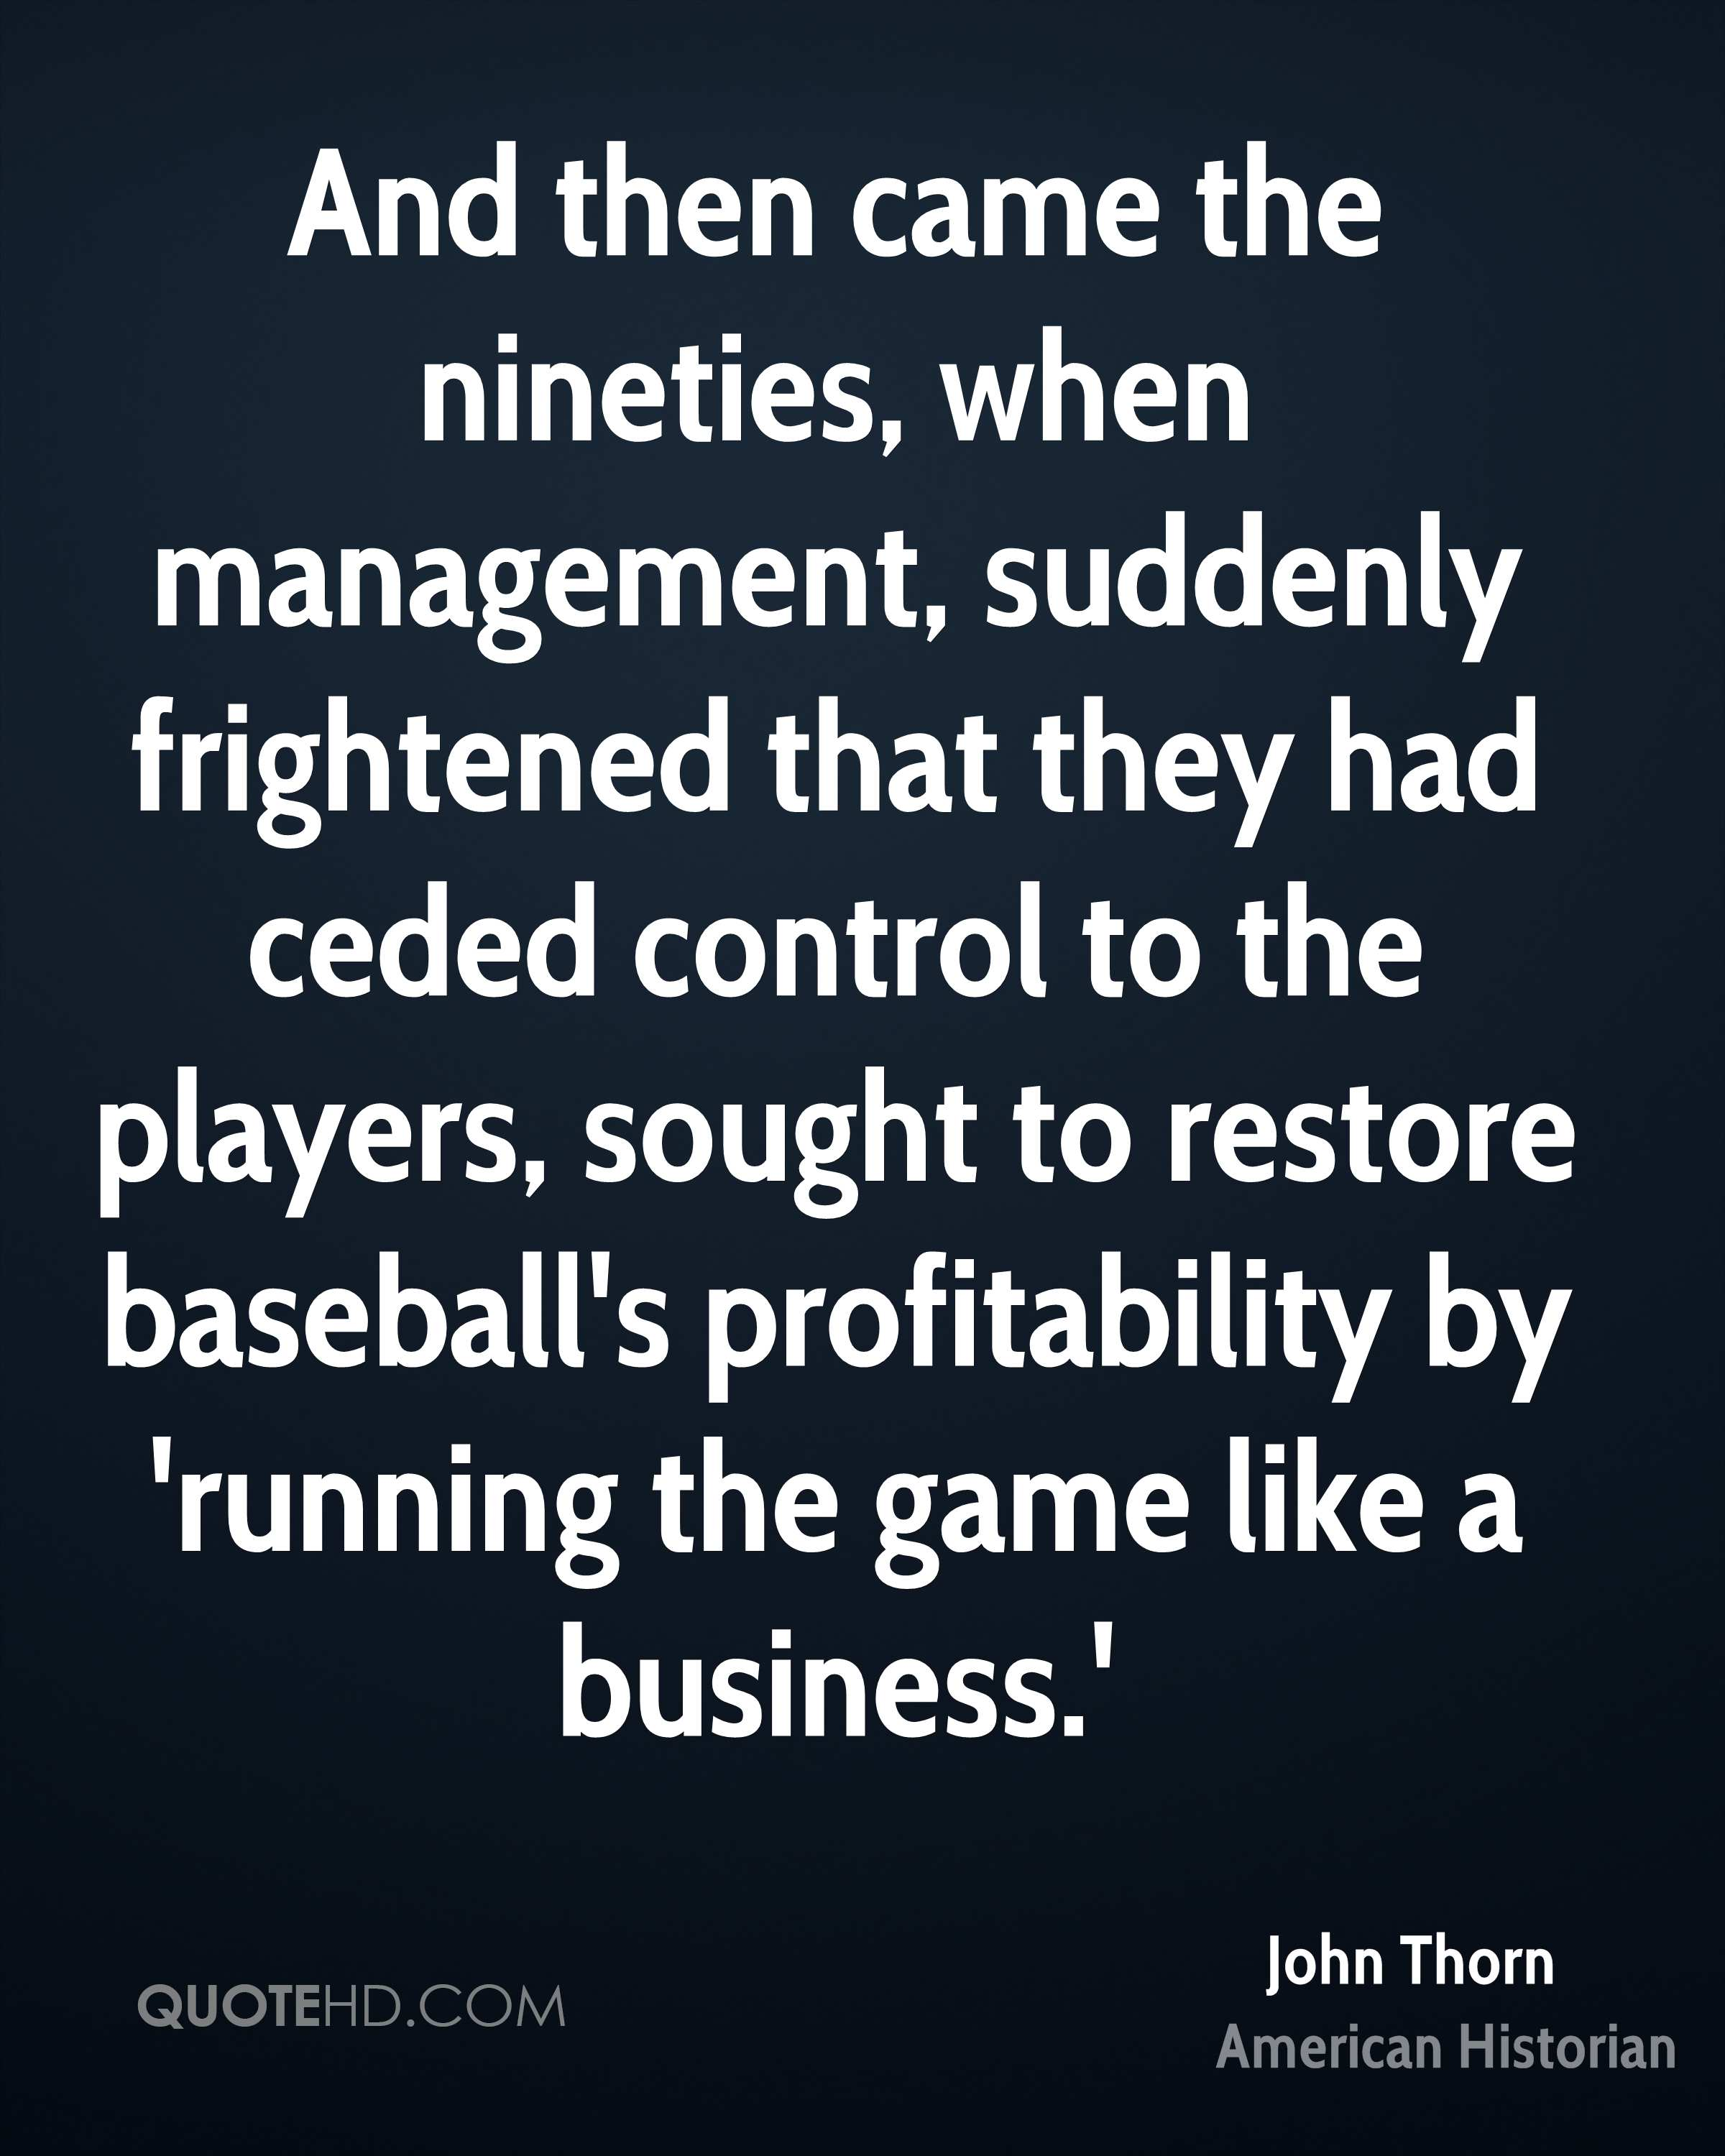 And then came the nineties, when management, suddenly frightened that they had ceded control to the players, sought to restore baseball's profitability by 'running the game like a business.'